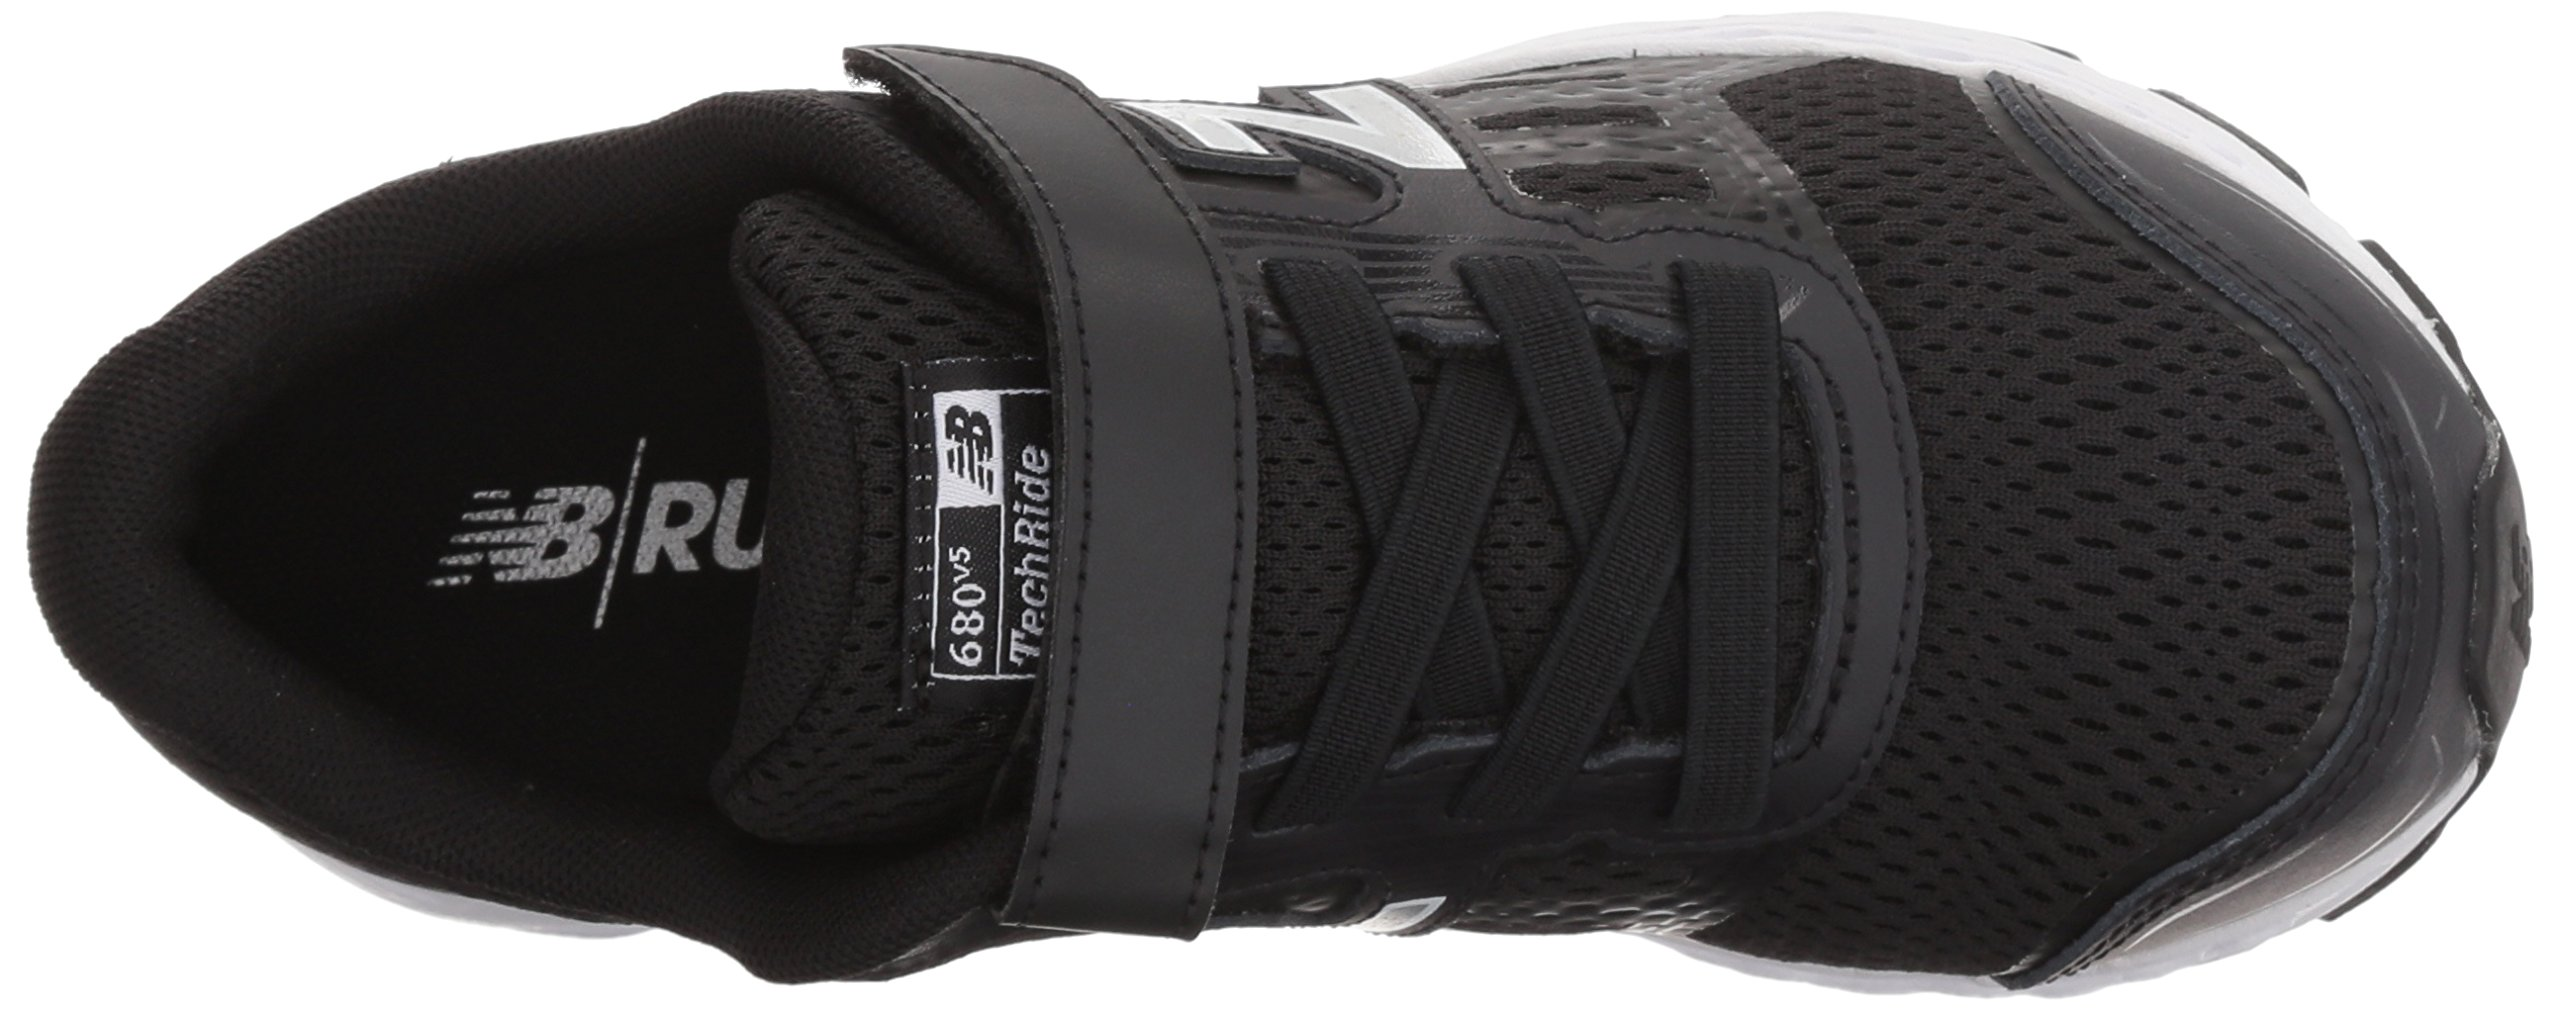 New Balance Boys' 680v5 Hook and Loop Running Shoe, Black/White, 9 M US Toddler by New Balance (Image #7)